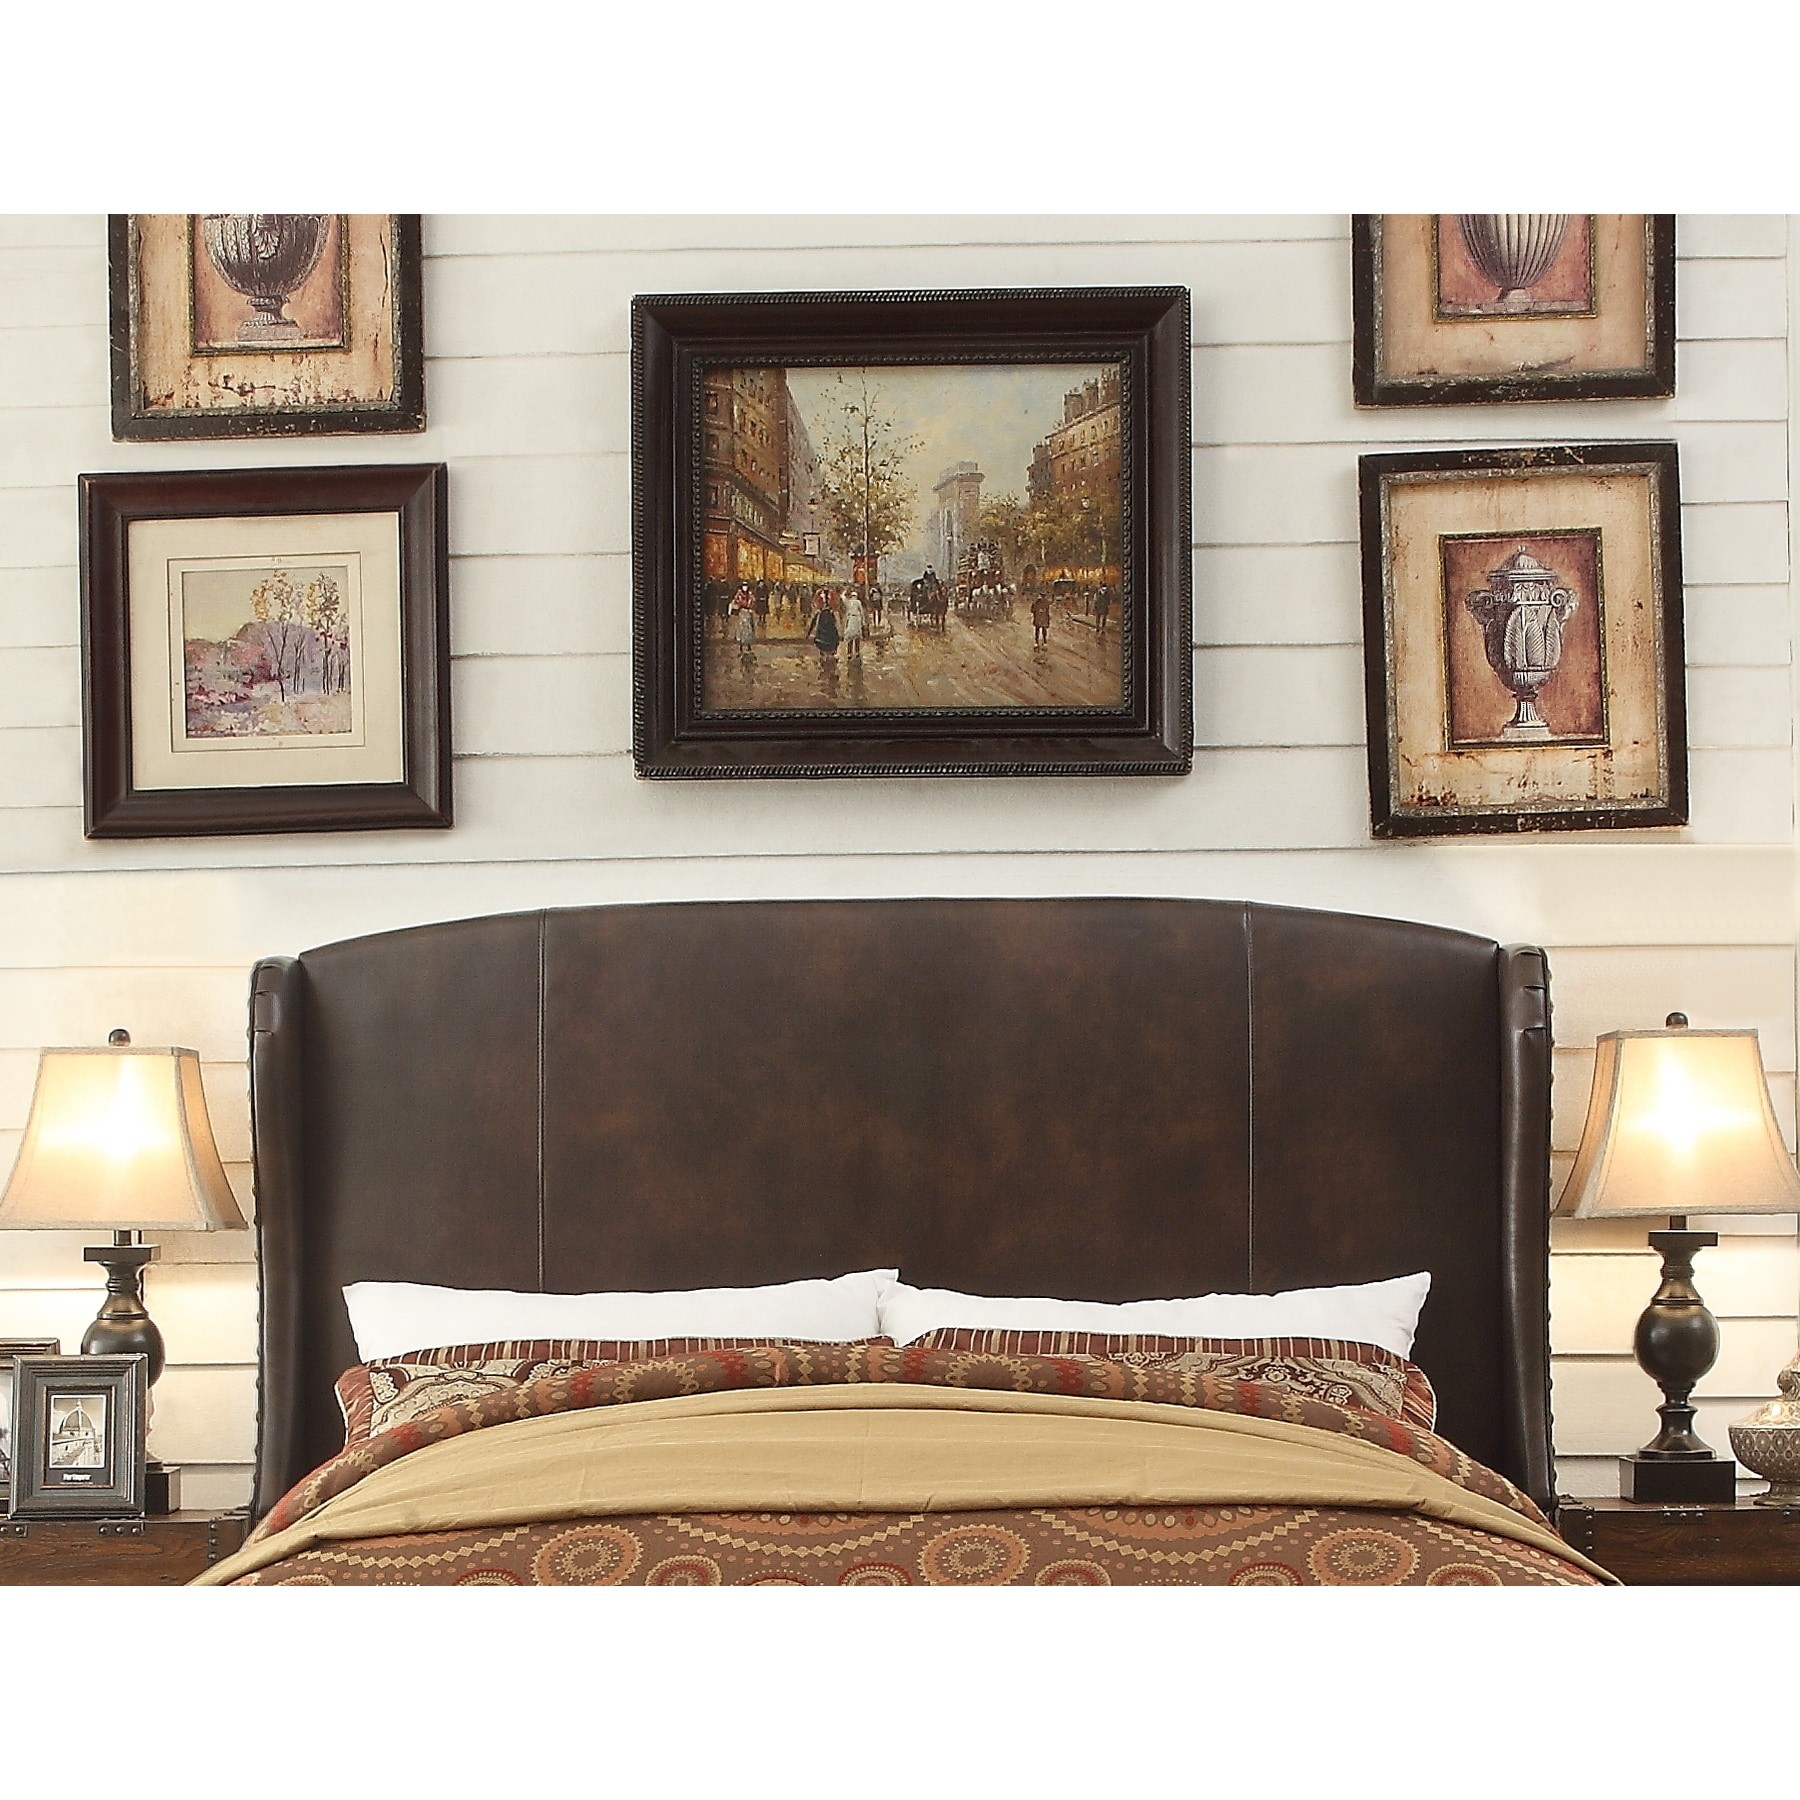 upholstered queen headboards tufted wingback roma details headboard sourceimage pewter dorel bedroom living eng full products